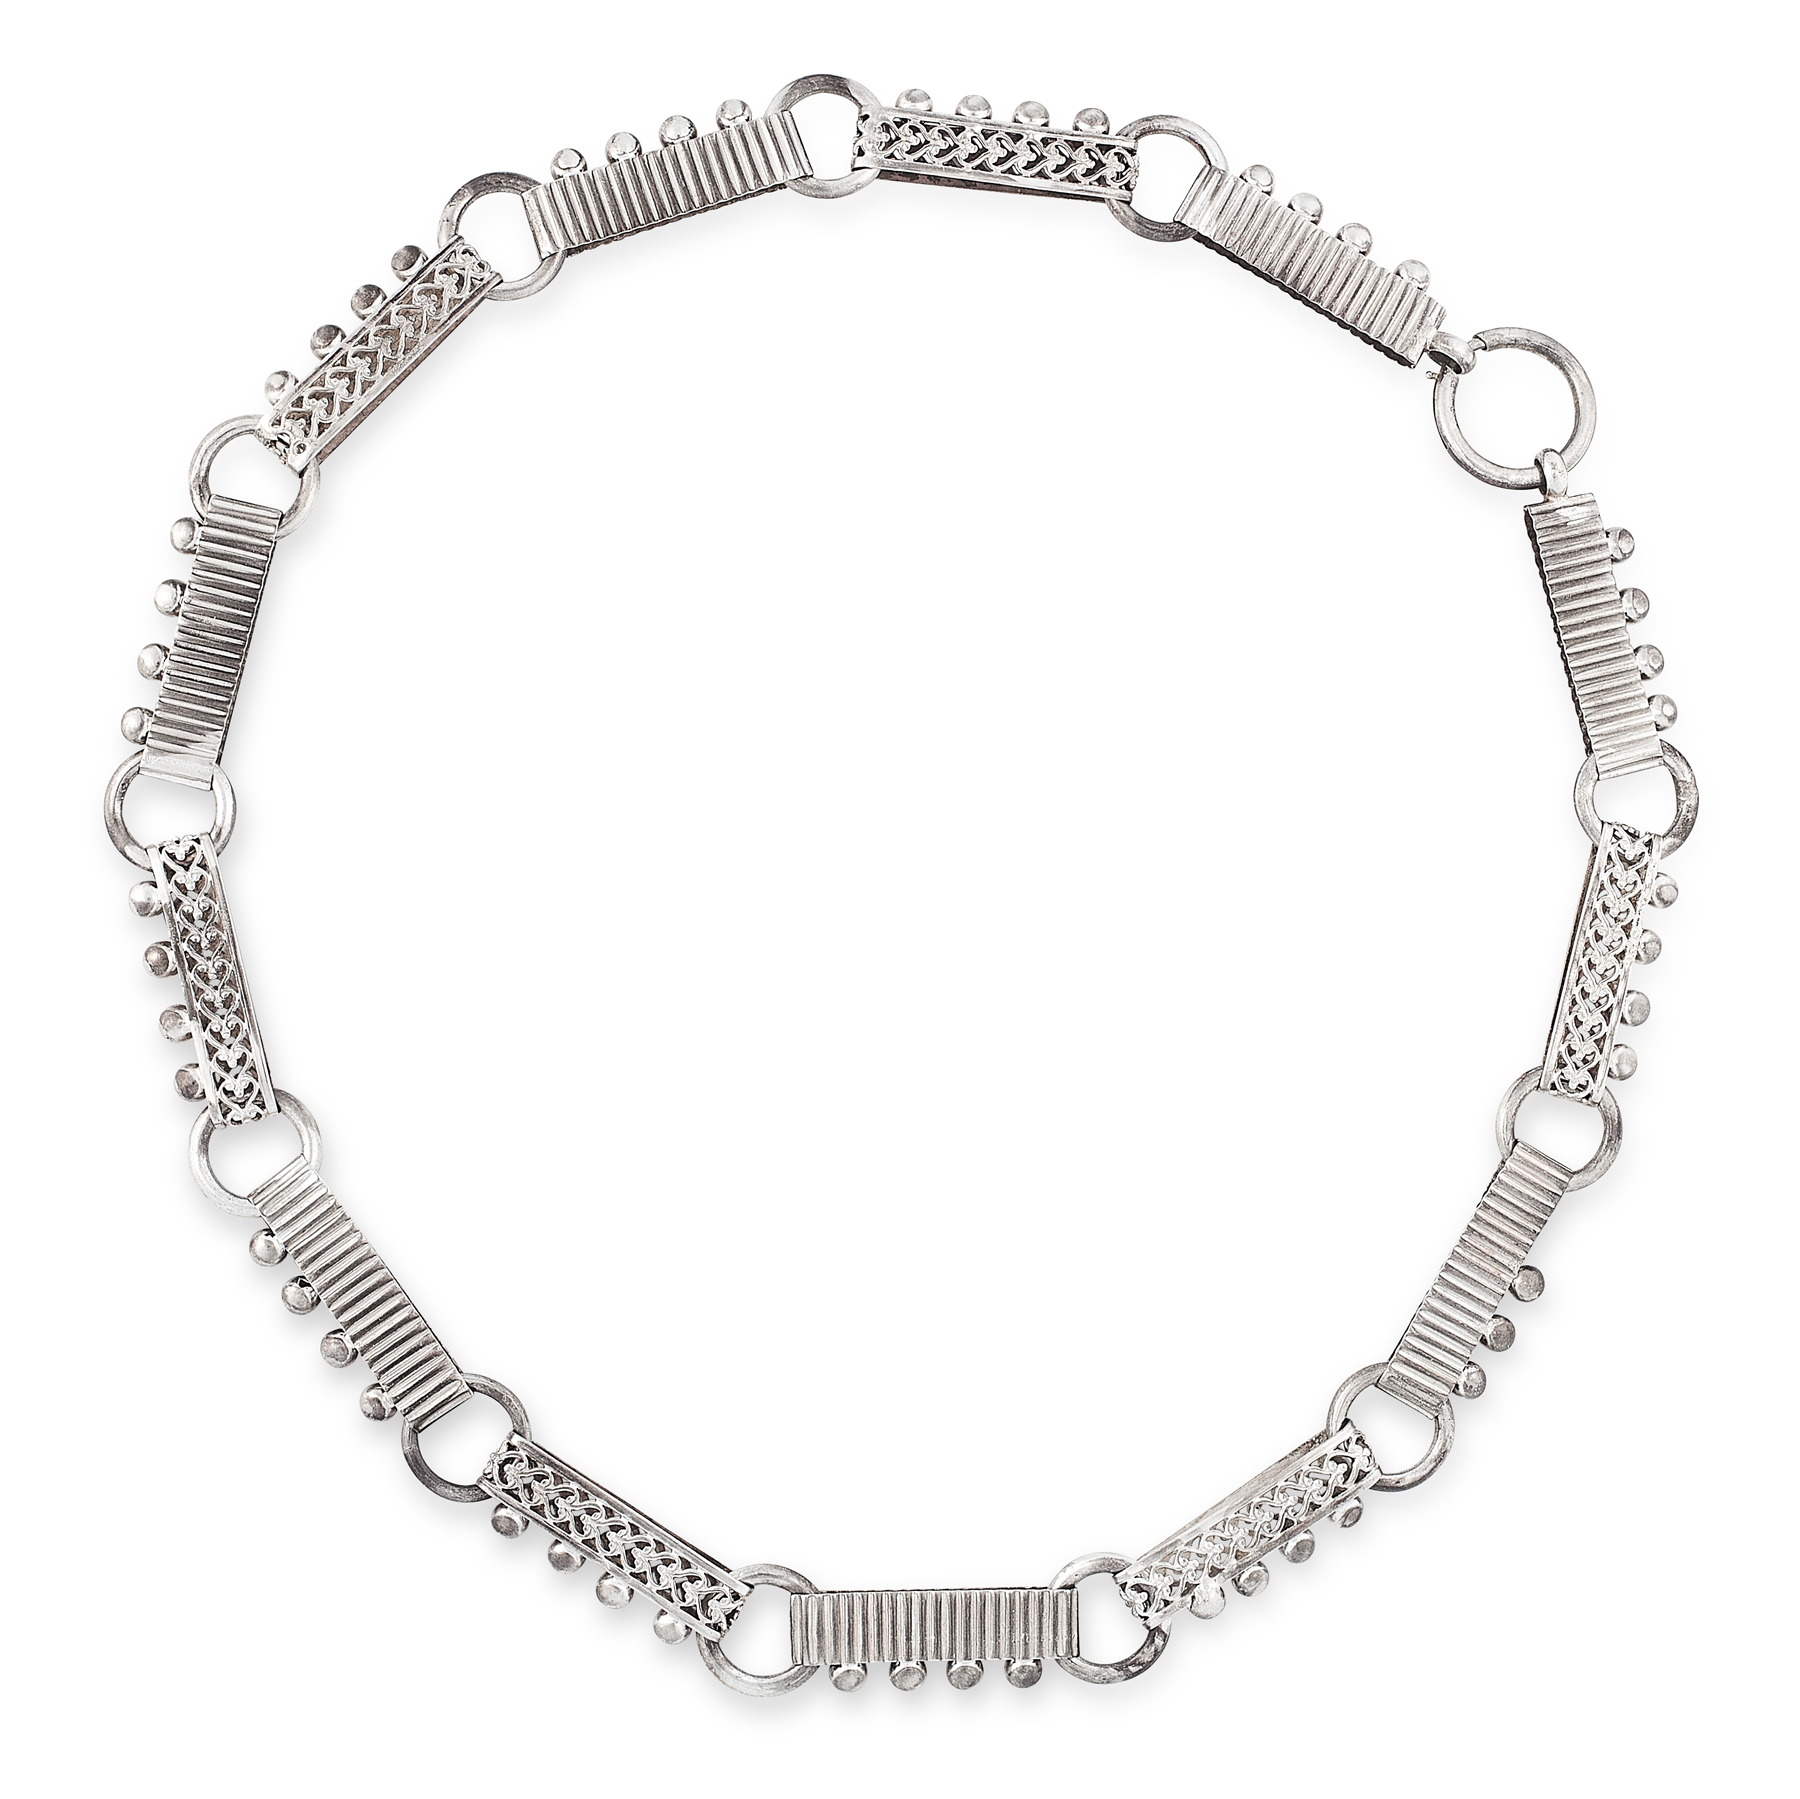 AN ANTIQUE VICTORIAN COLLAR NECKLACE in silver, designed as alternating elongated links with